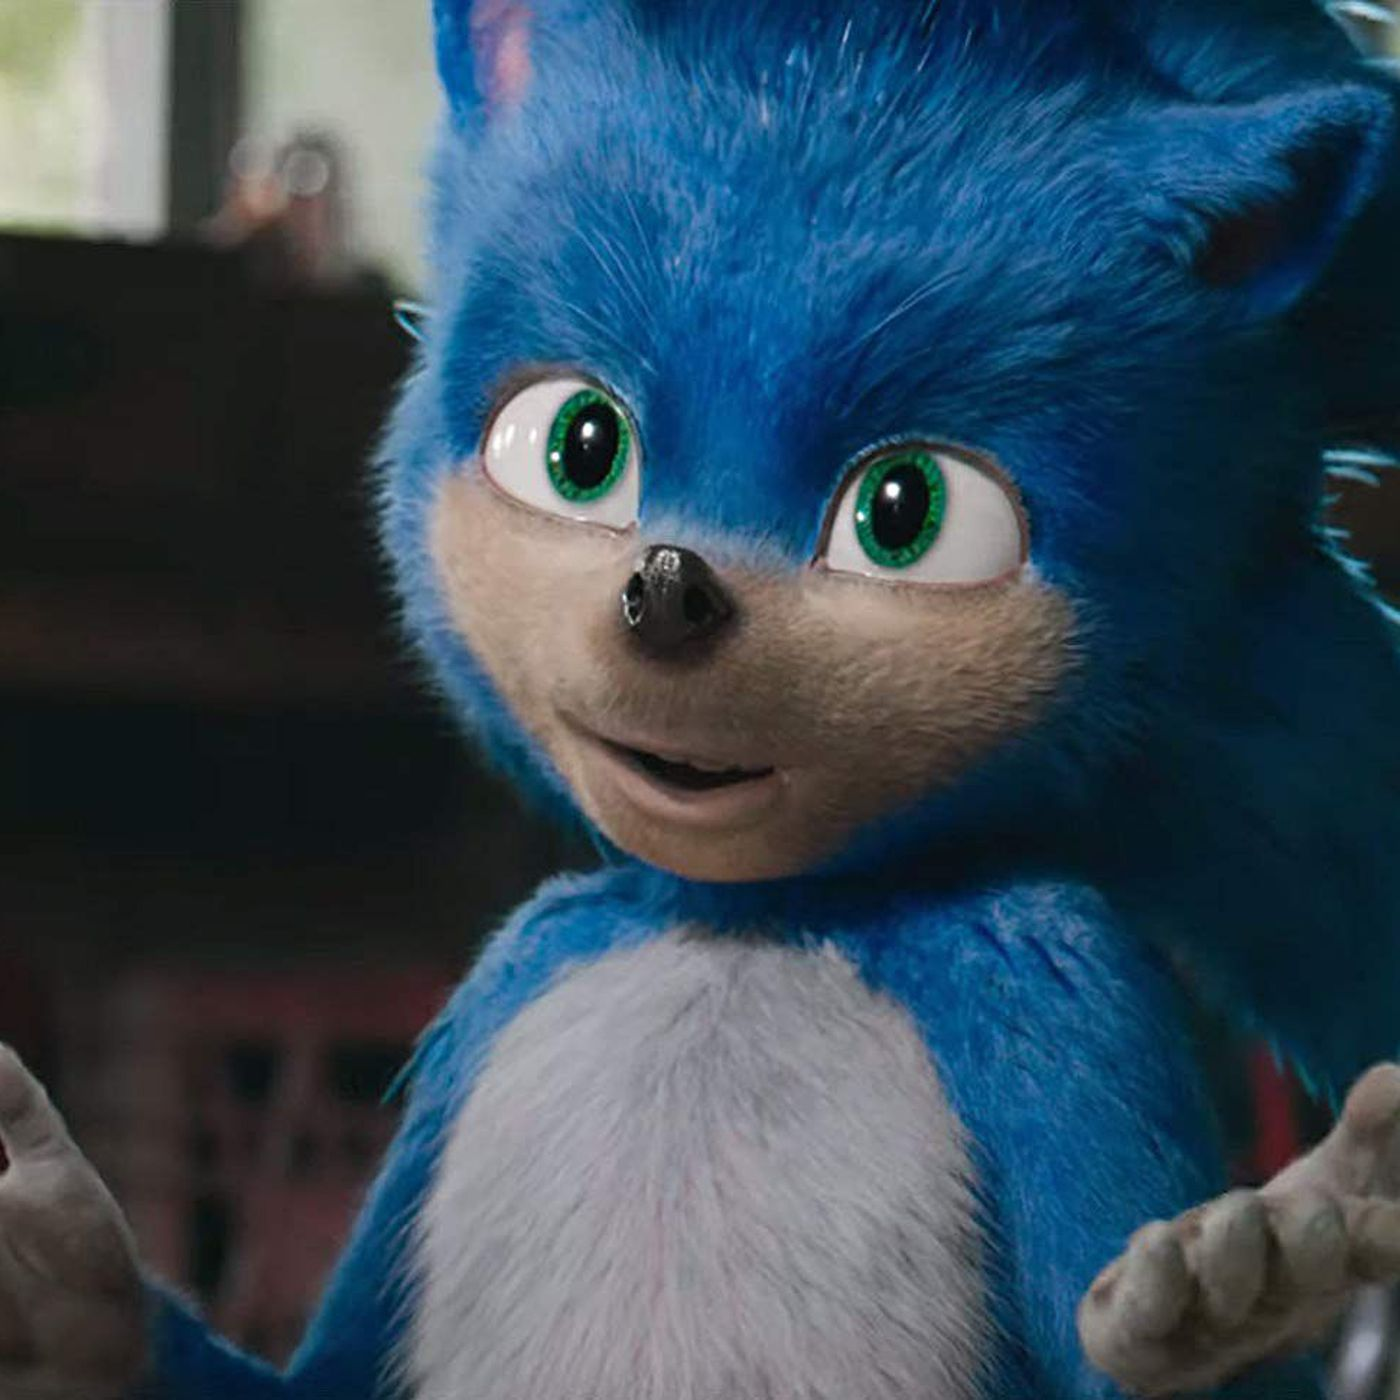 Sonic S Live Action Design Upset The Entire Internet So The